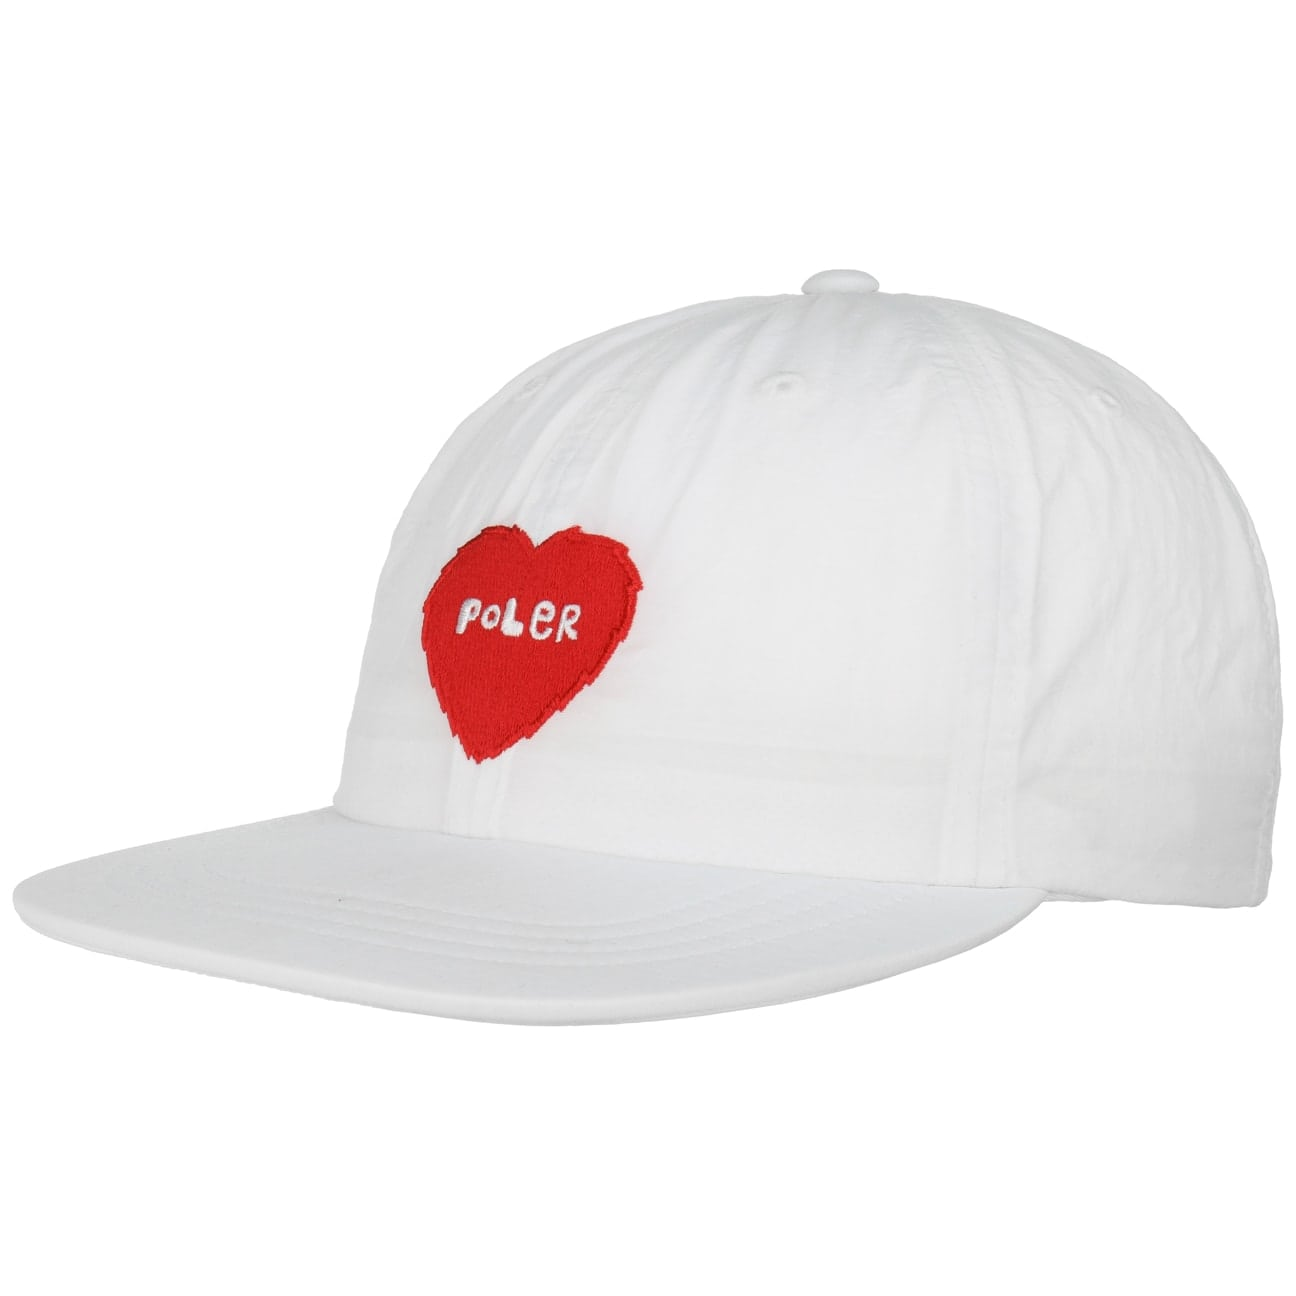 Casquette Heart Soft Visor Nylon by Poler  baseball cap